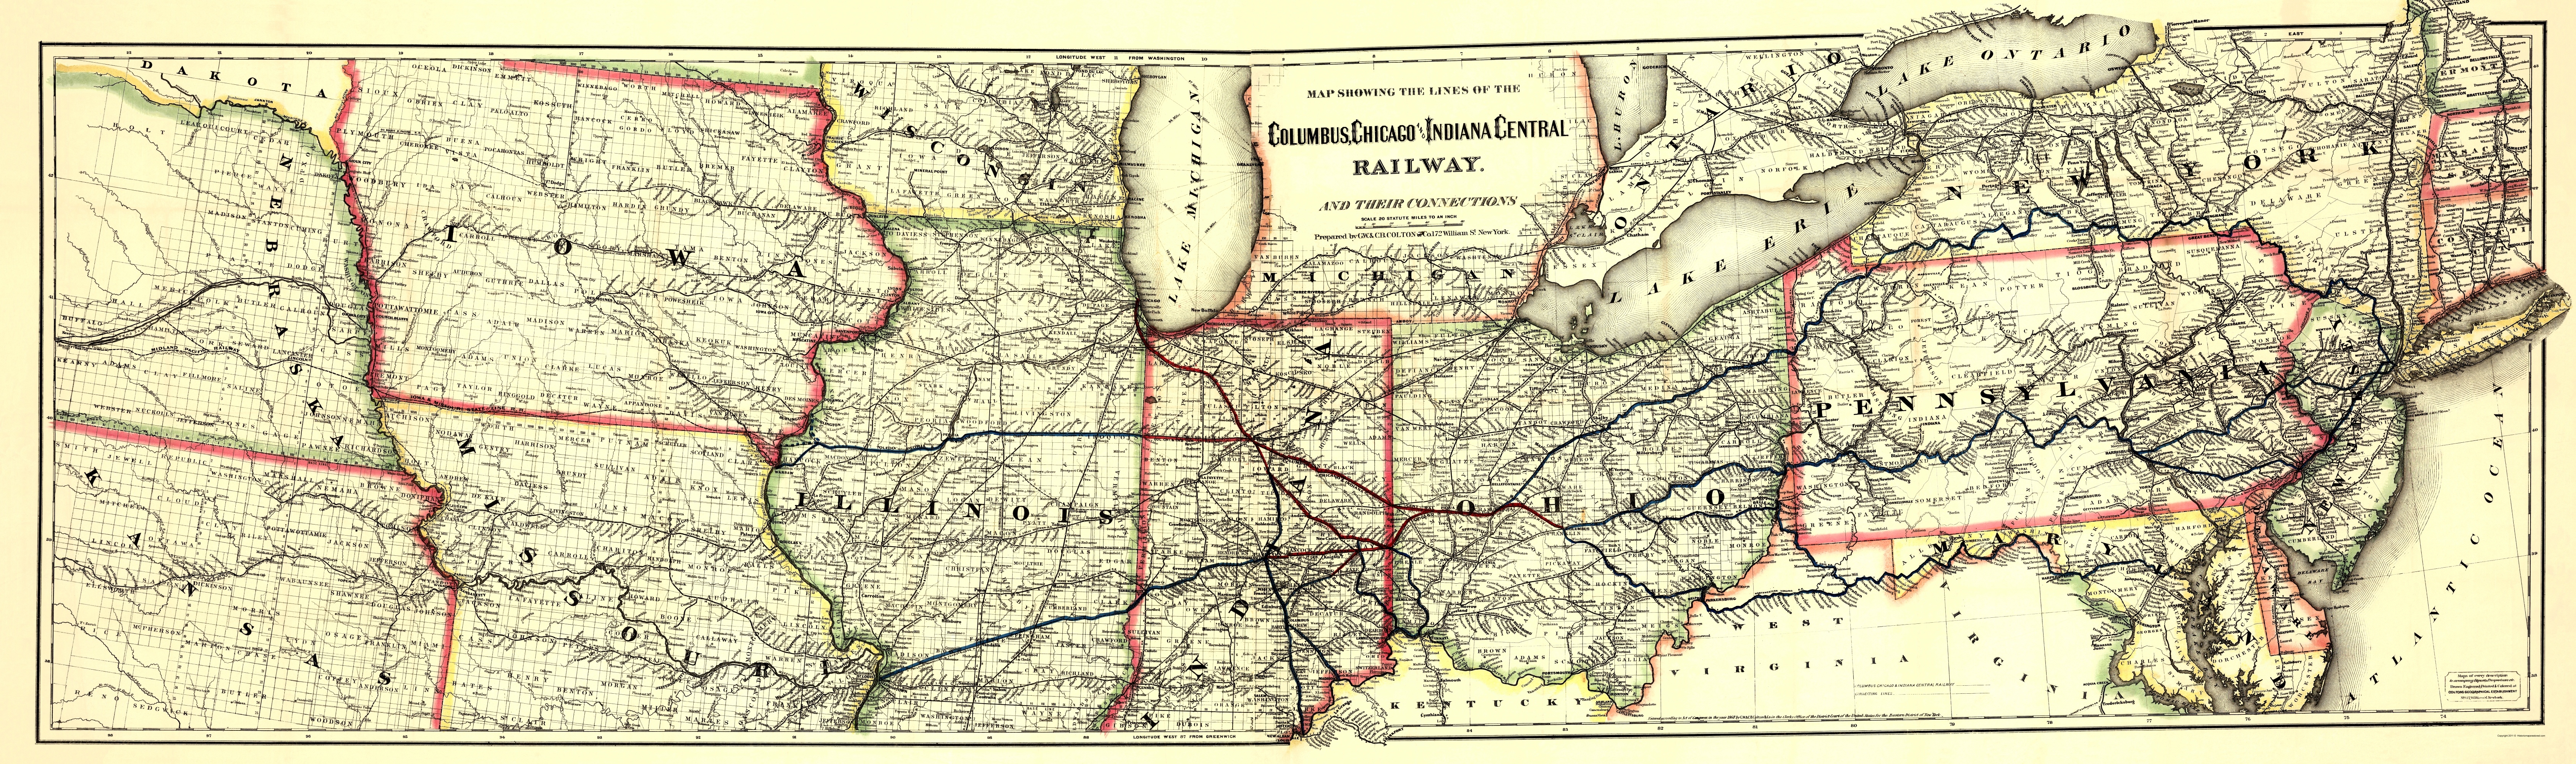 Old Railroad Map Columbus Chicago and Indiana Central Railway